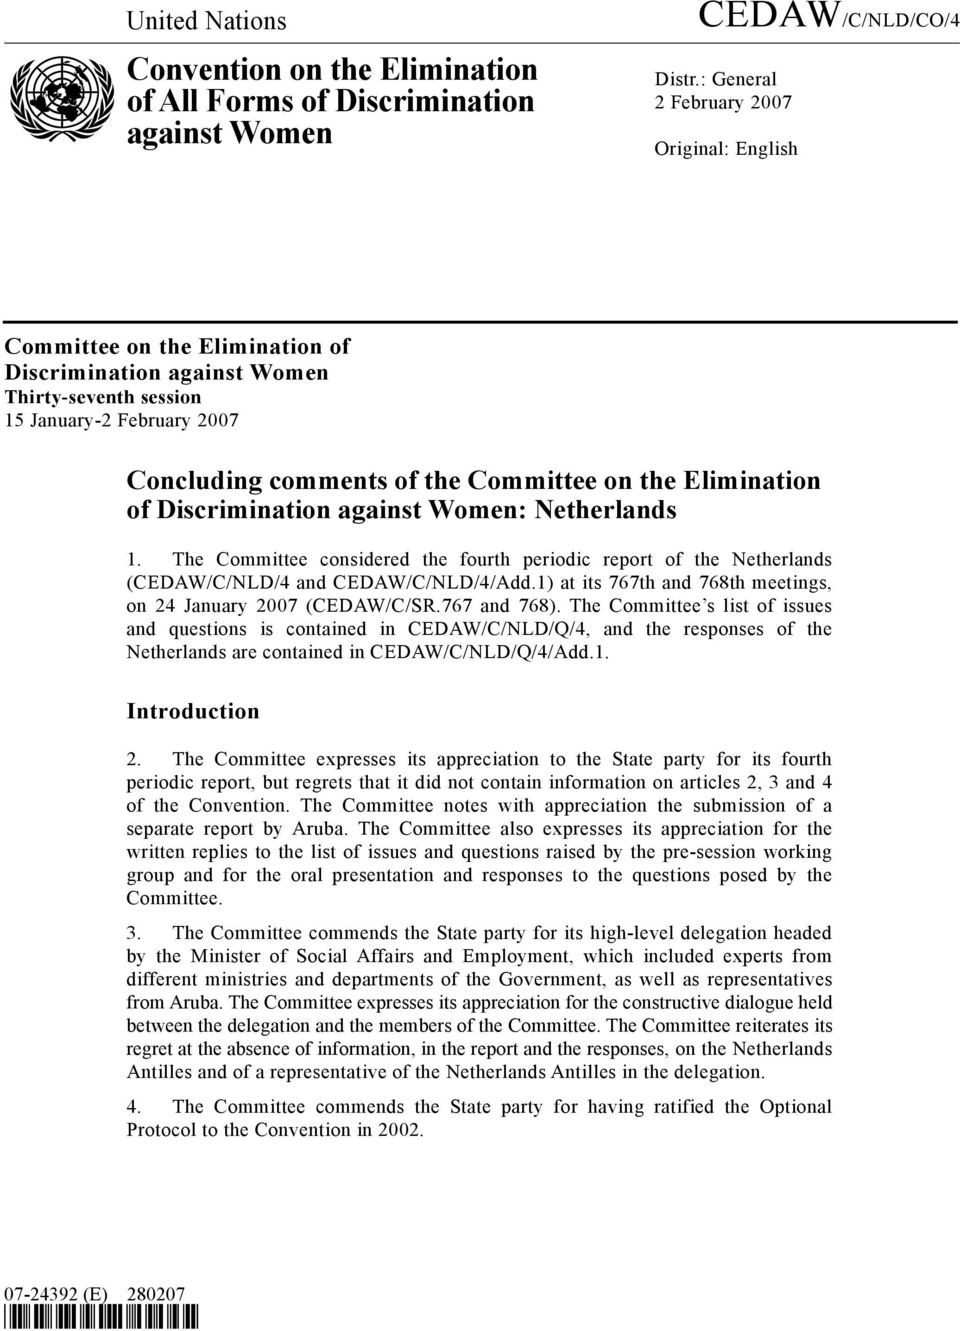 Elimination of Discrimination against Women: Netherlands 1. The Committee considered the fourth periodic report of the Netherlands (CEDAW/C/NLD/4 and CEDAW/C/NLD/4/Add.